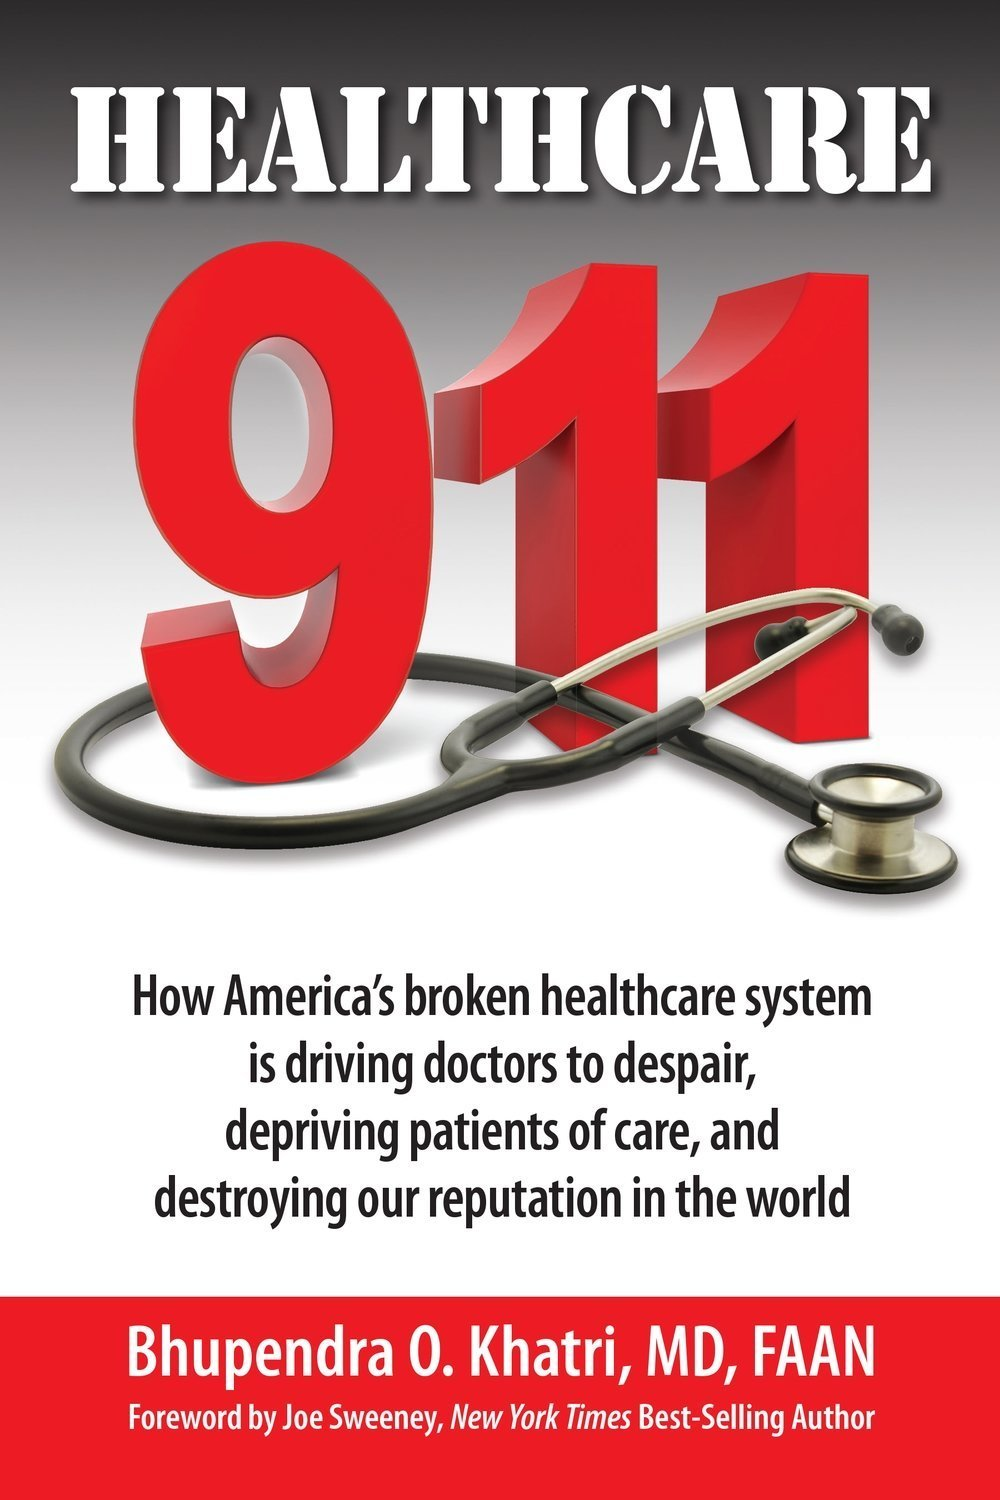 Healthcare 911: How America's broken healthcare system is driving doctors to despair, depriving patients of care, and destroying our reputation in the world  - Medical